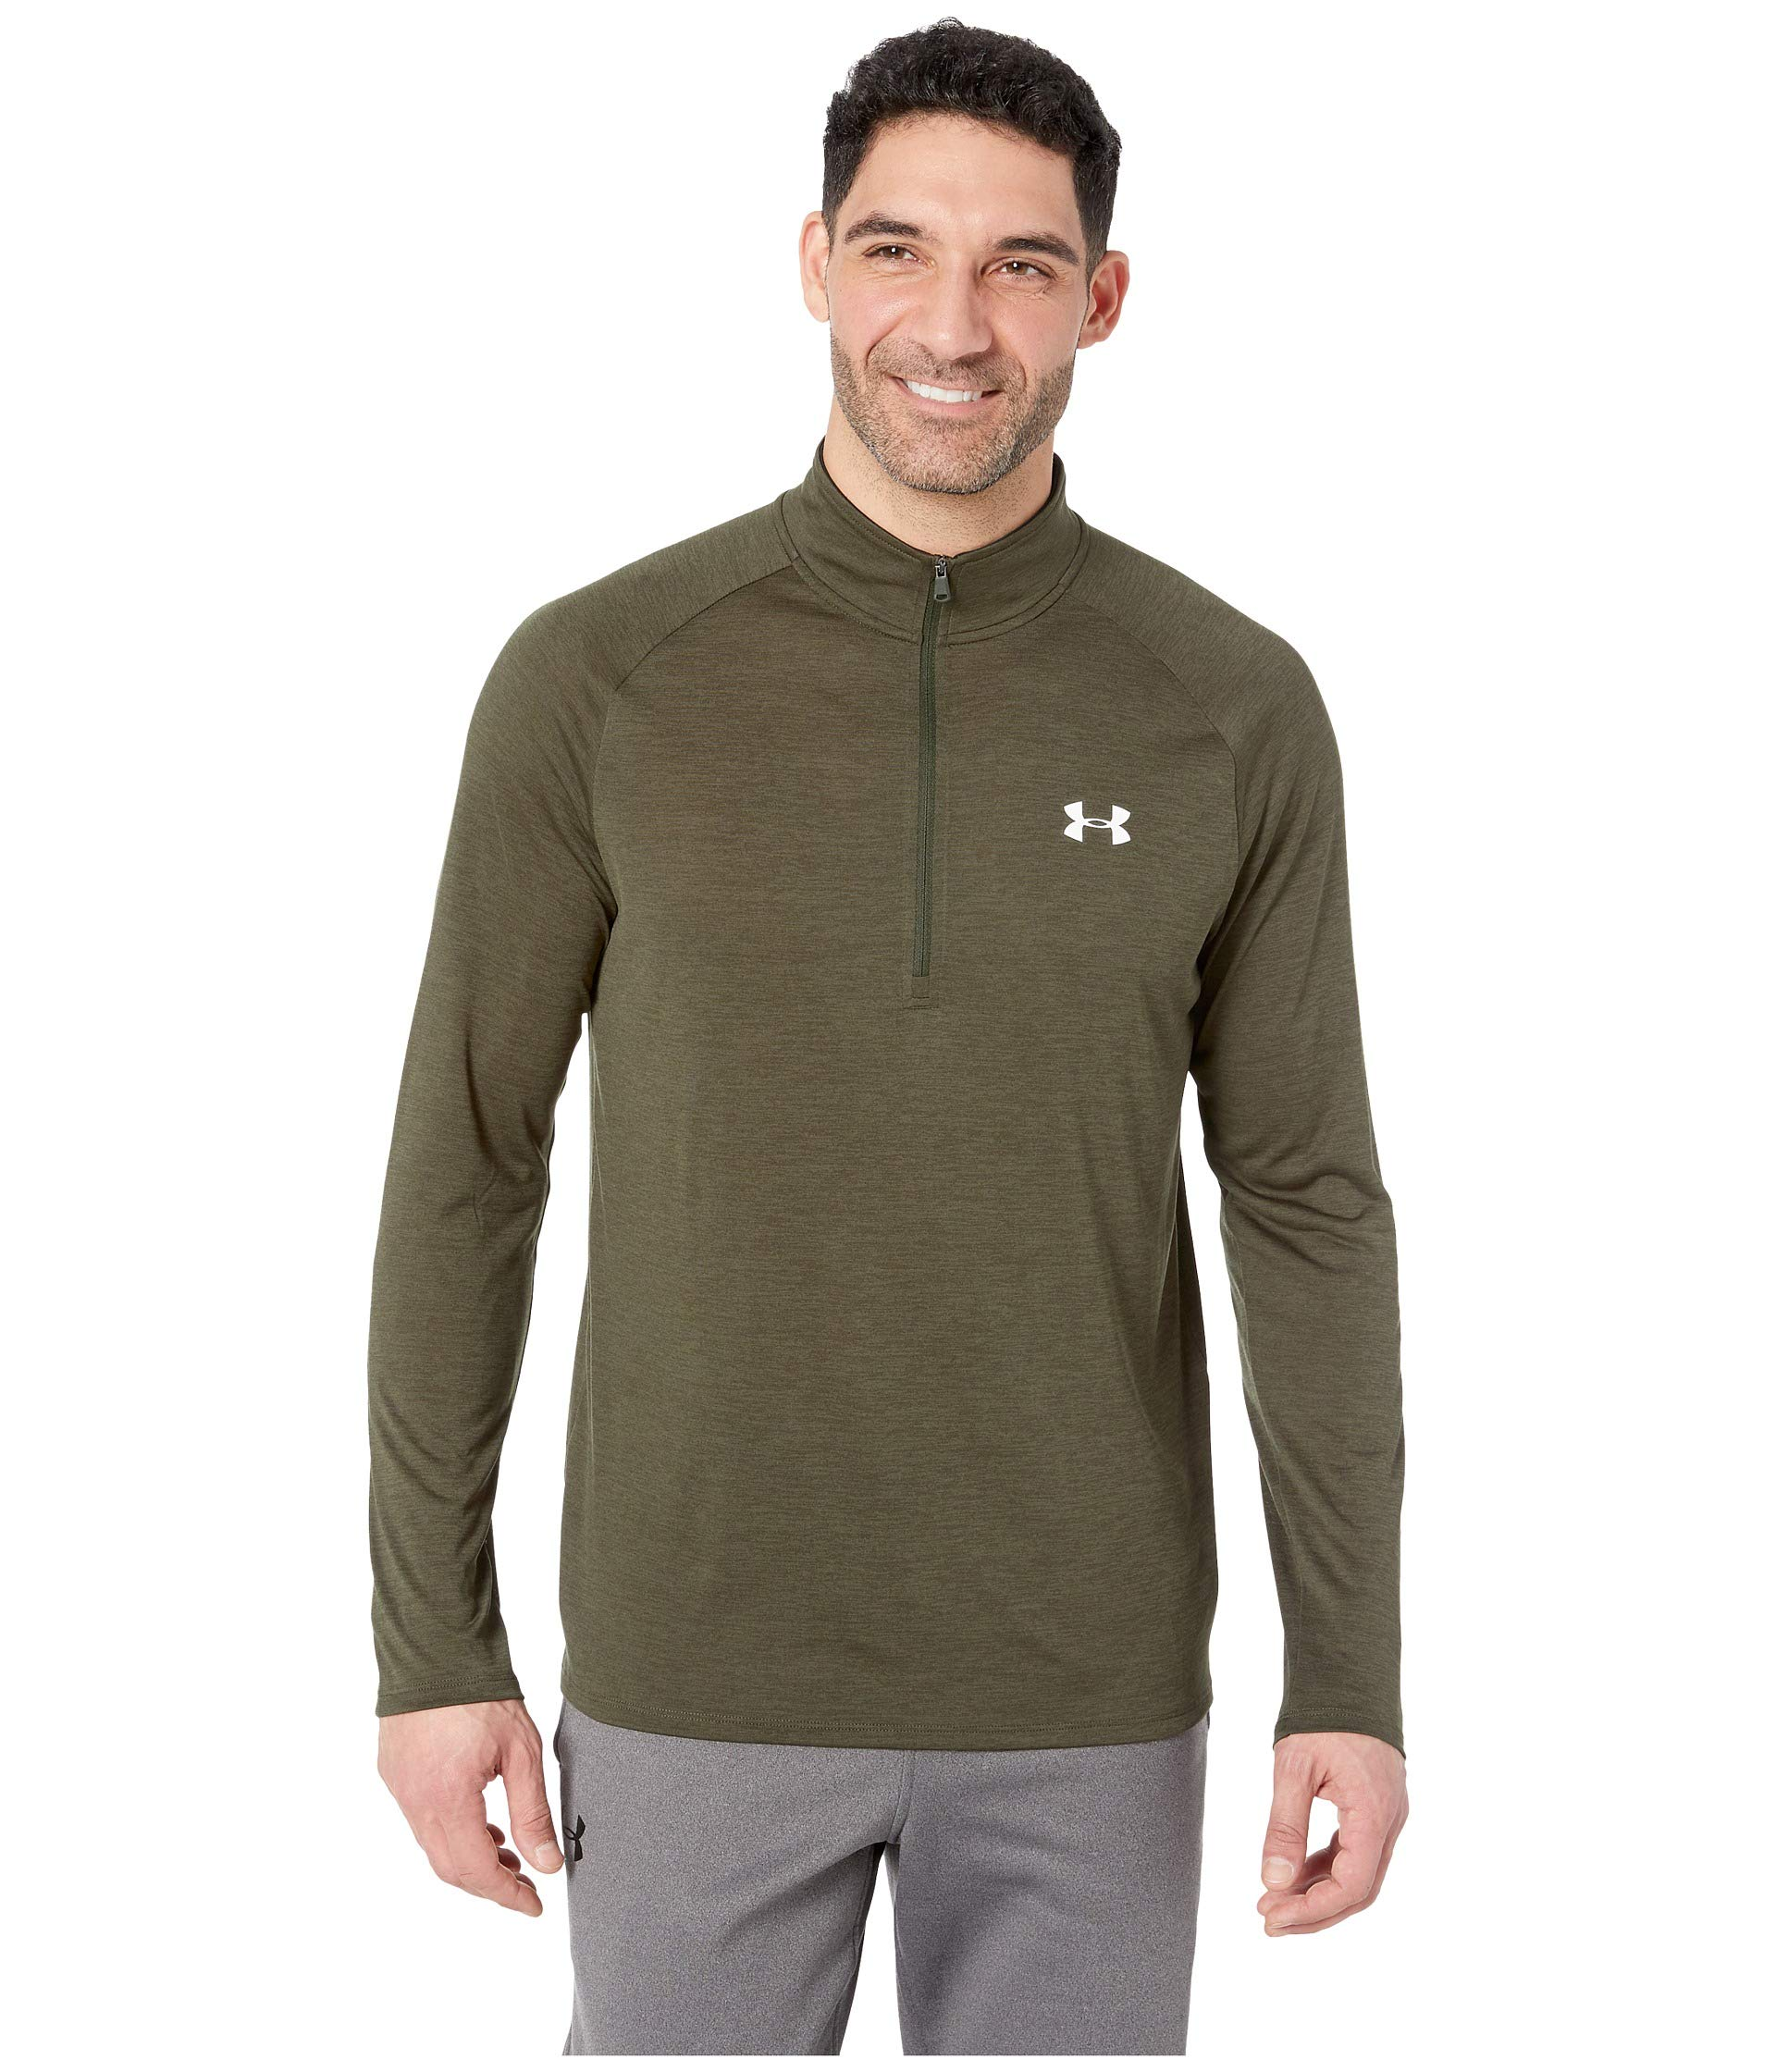 Under Armour Men's UA Tech 1/2 Zip Artillery Green/White Small by Under Armour